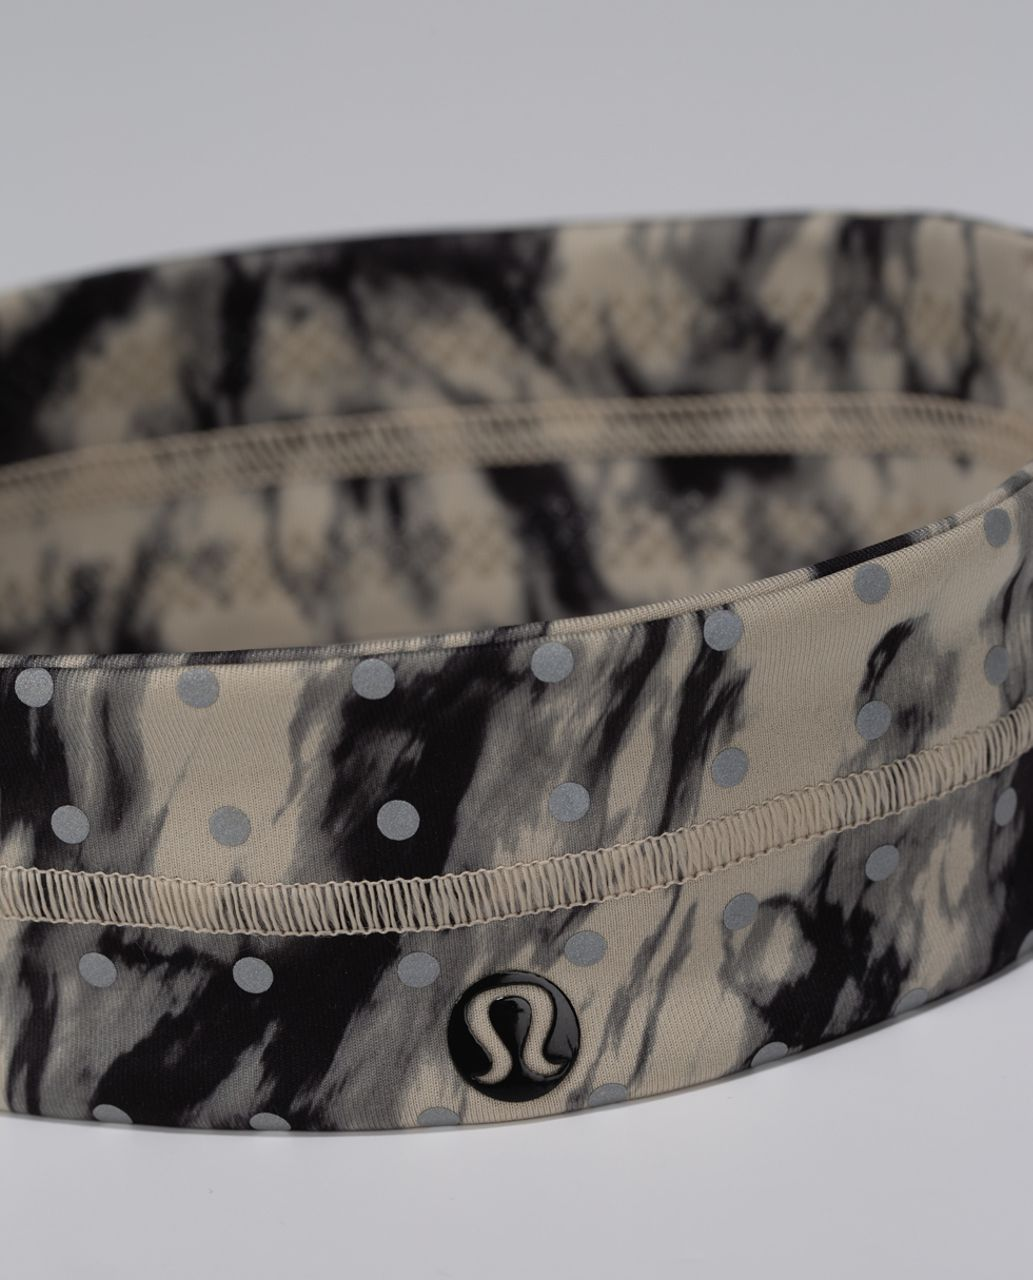 Lululemon Fly Away Tamer Headband *Luxtreme (Reflective) - Great Granite Black Mojave Tan